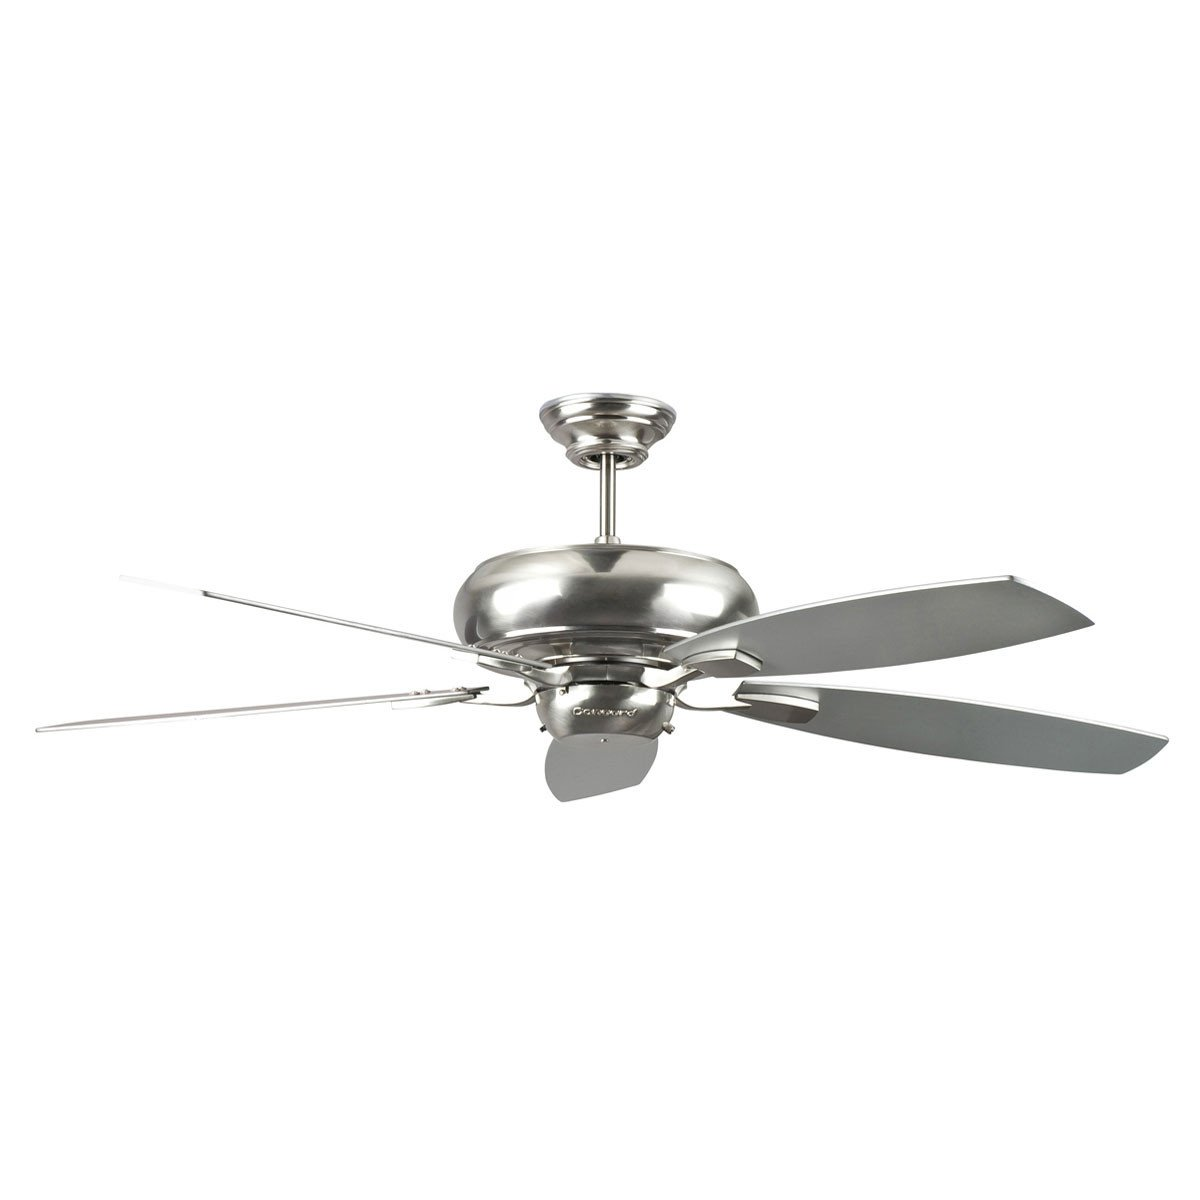 "Concord Fans Contemporary 52"" Roosevelt Stainless Steel Ceiling Fan"